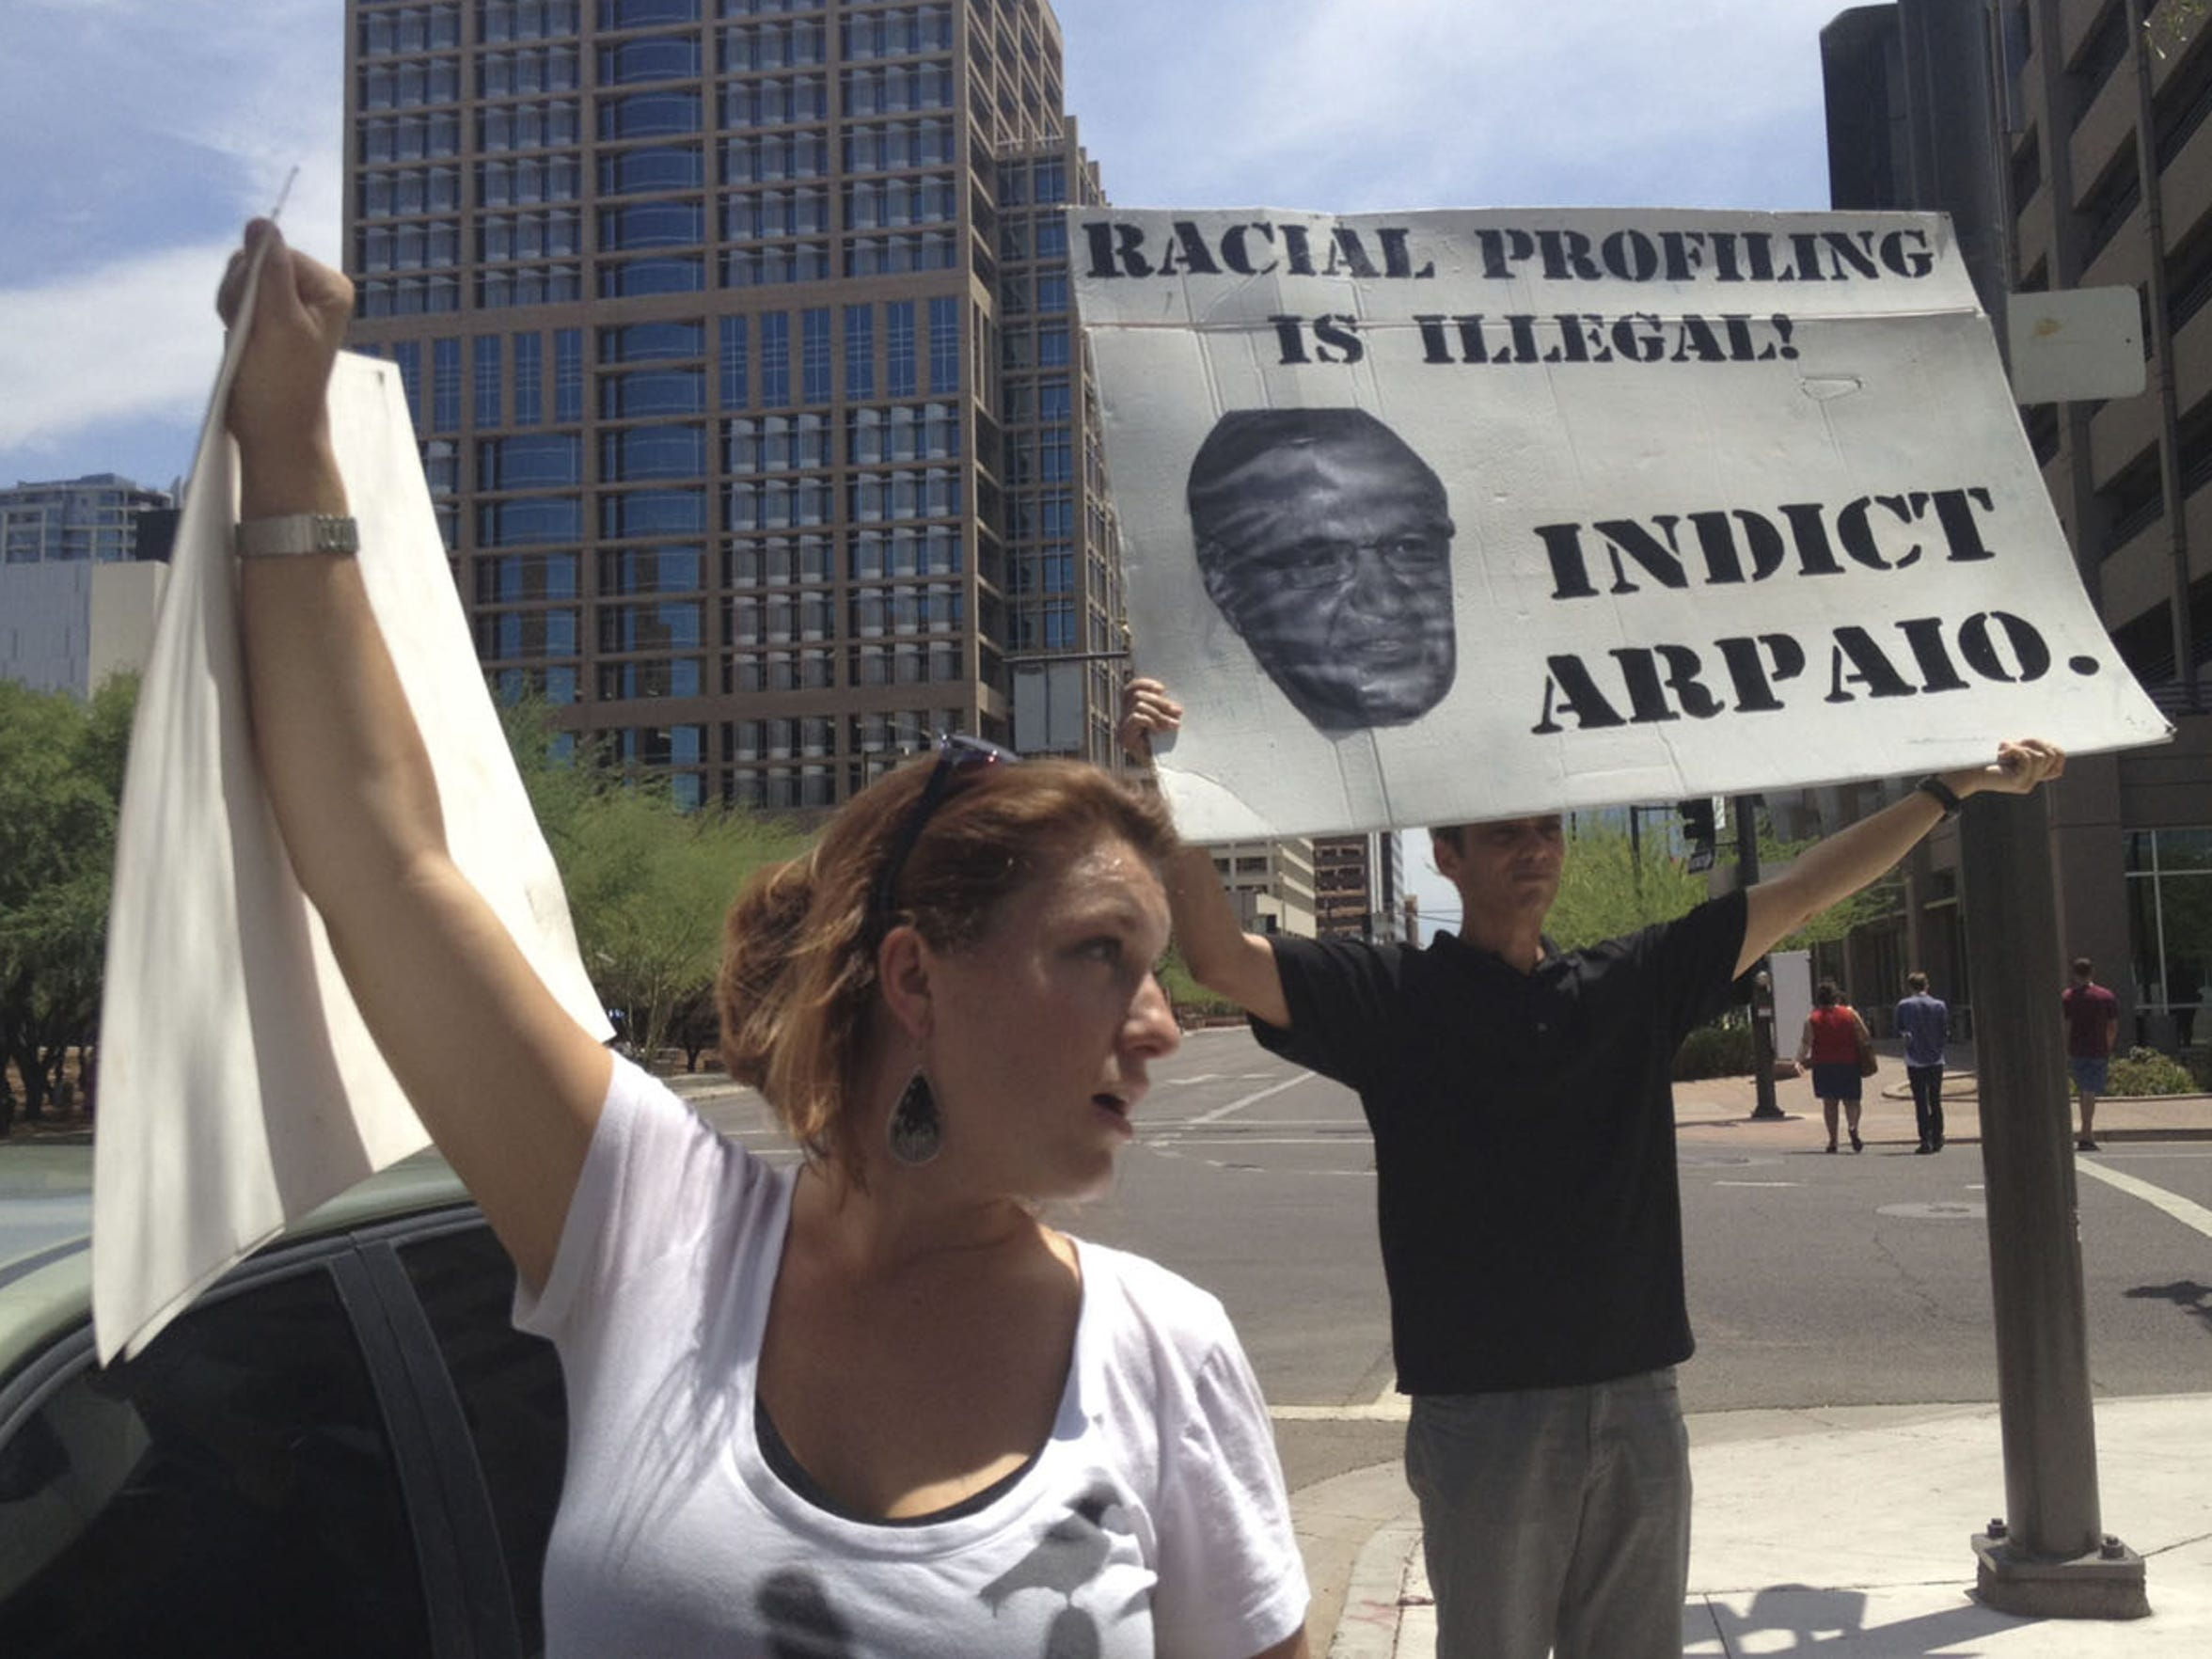 Arpaio's saturation patrols and raids targeting illegal immigrants drew criticism and frequent protests. In 2013, a federal judge ordered his agency to stop, and to submit to oversight by a court monitor.